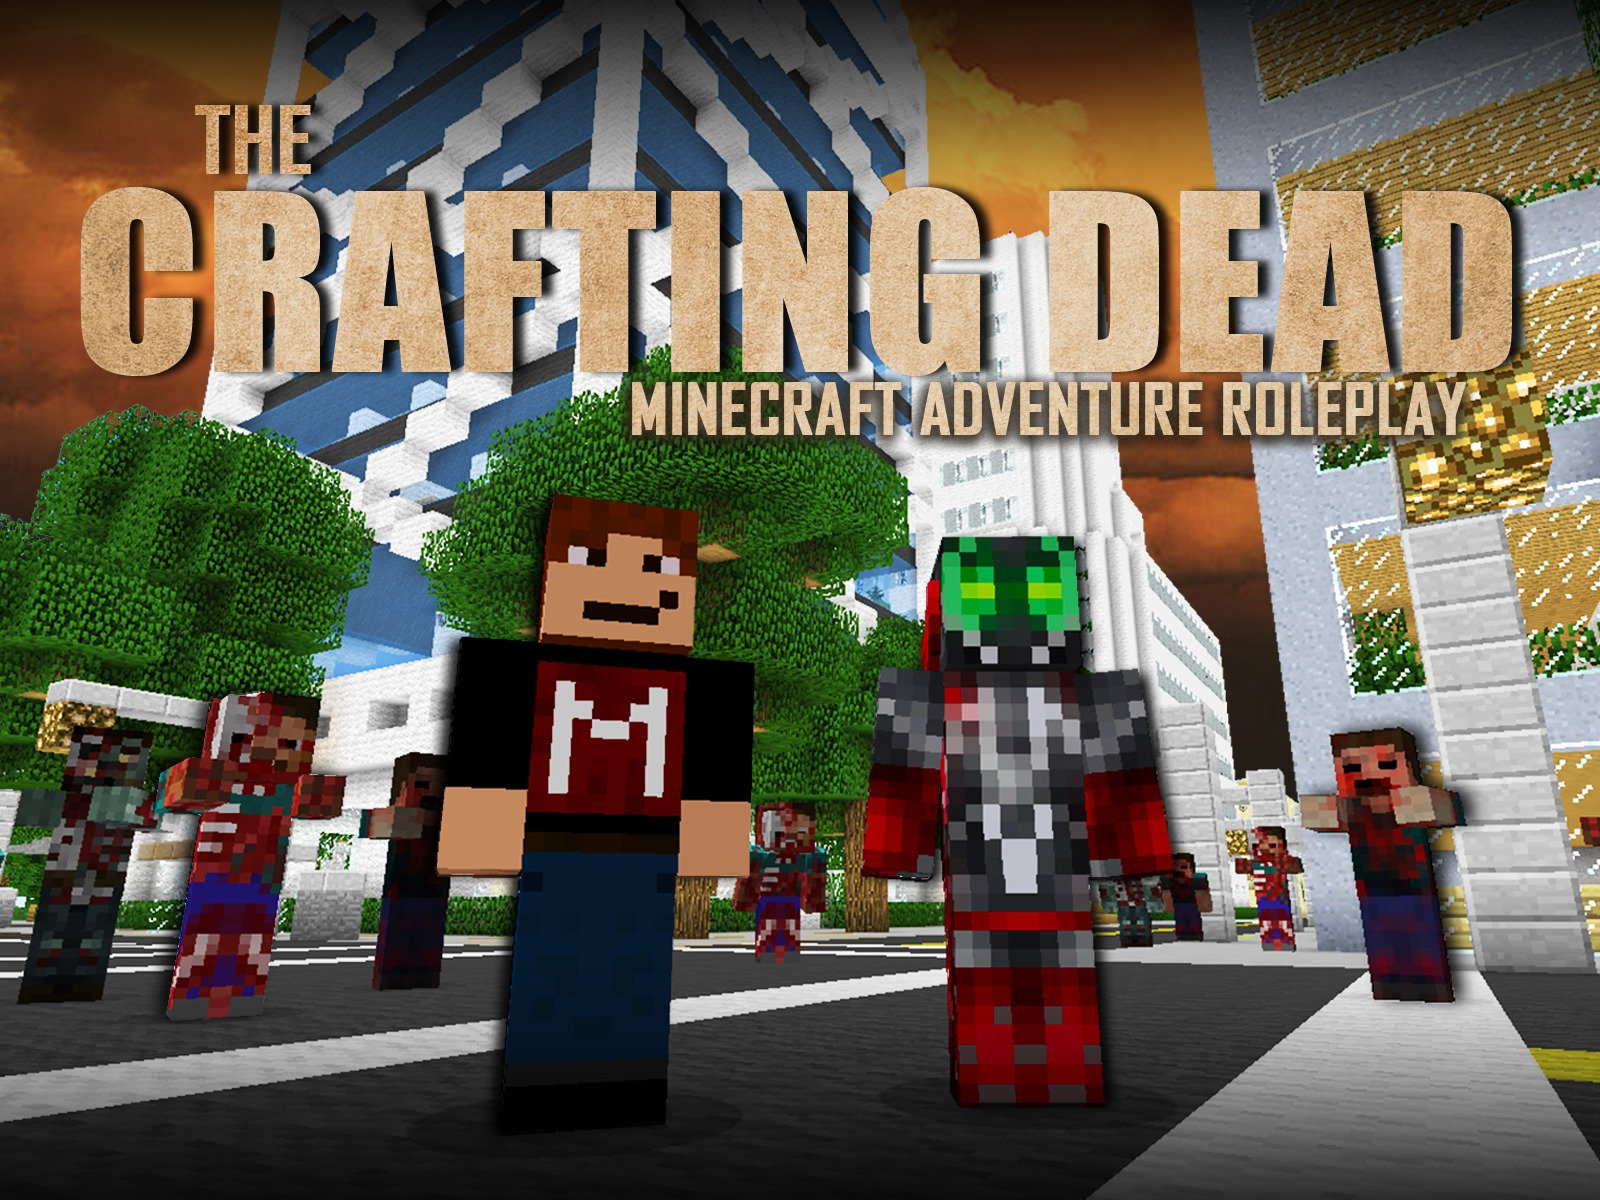 Clip: The Crafting Dead (Minecraft Adventure Roleplay)